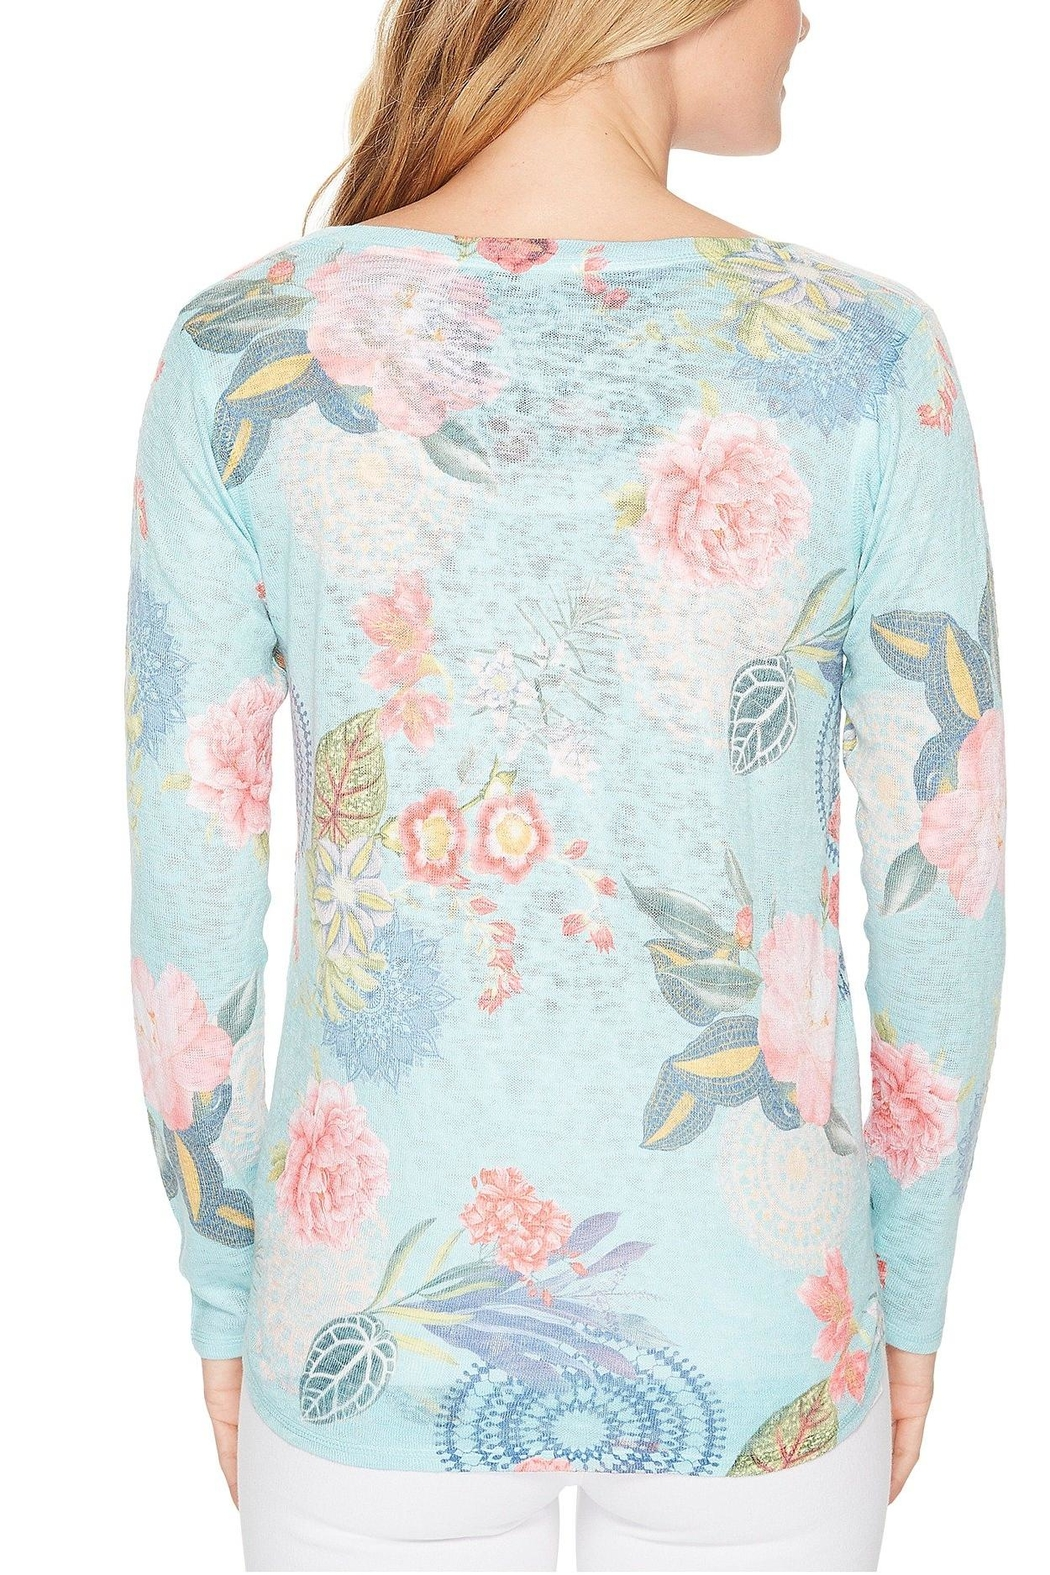 Nally & Millie Floral Print Top - Side Cropped Image